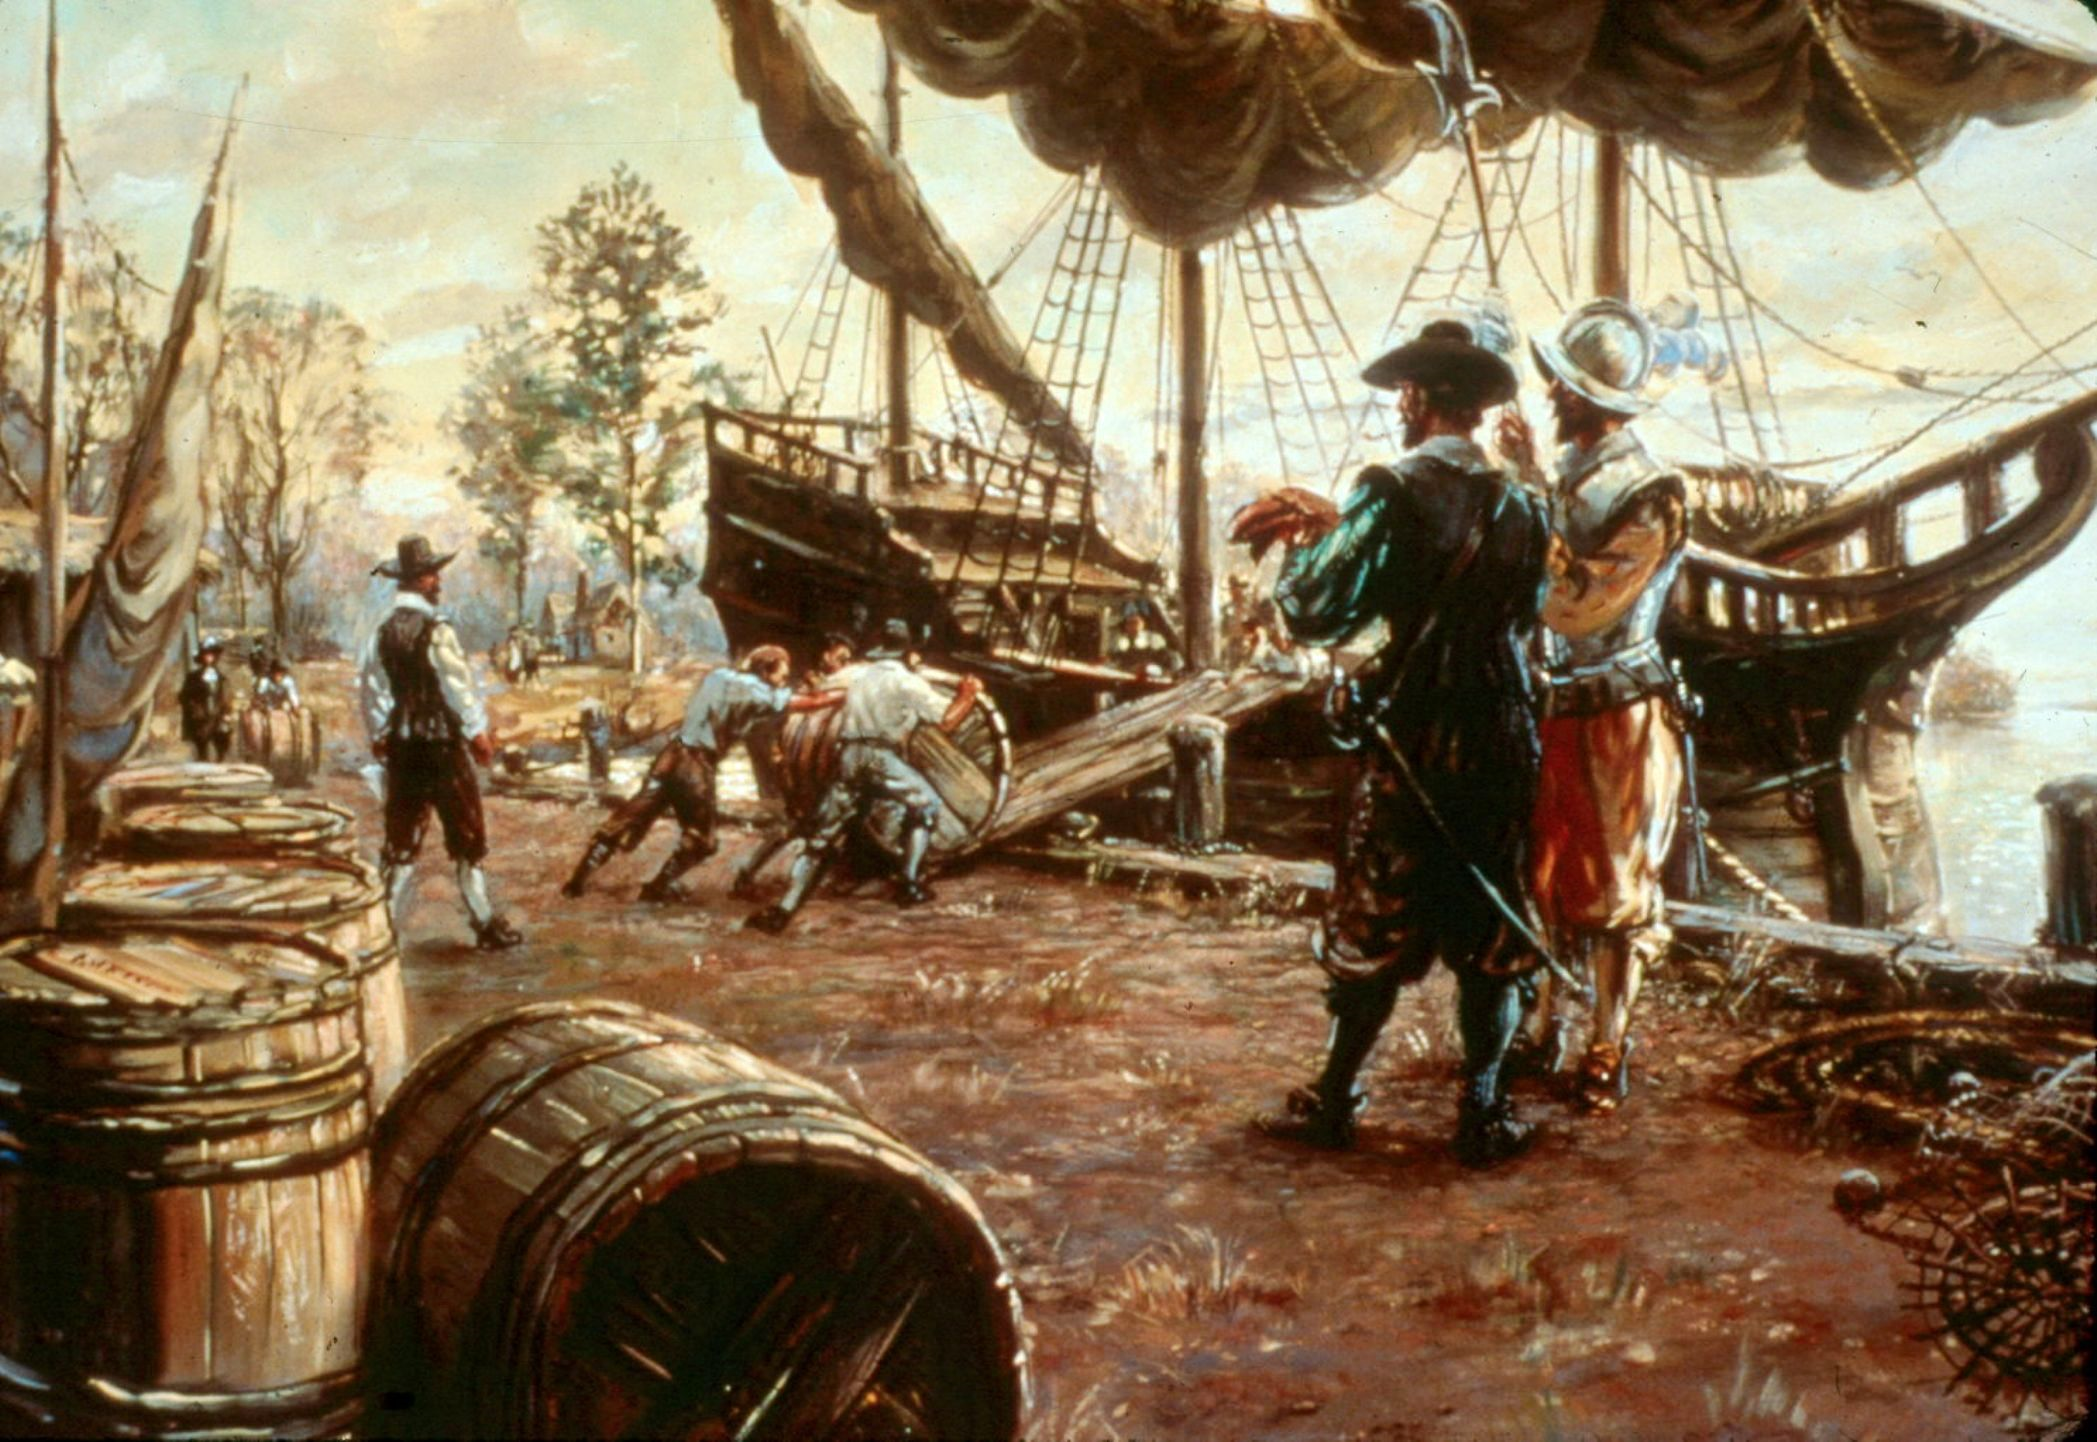 jamestown the first colony in the new world The first new world voyage of christopher columbus la navidad: first european settlement in the americas the rights of individuals to own property also took root jamestown in jamestown in 1618, when the virginia company granted the colonists the right to own land previously held solely.